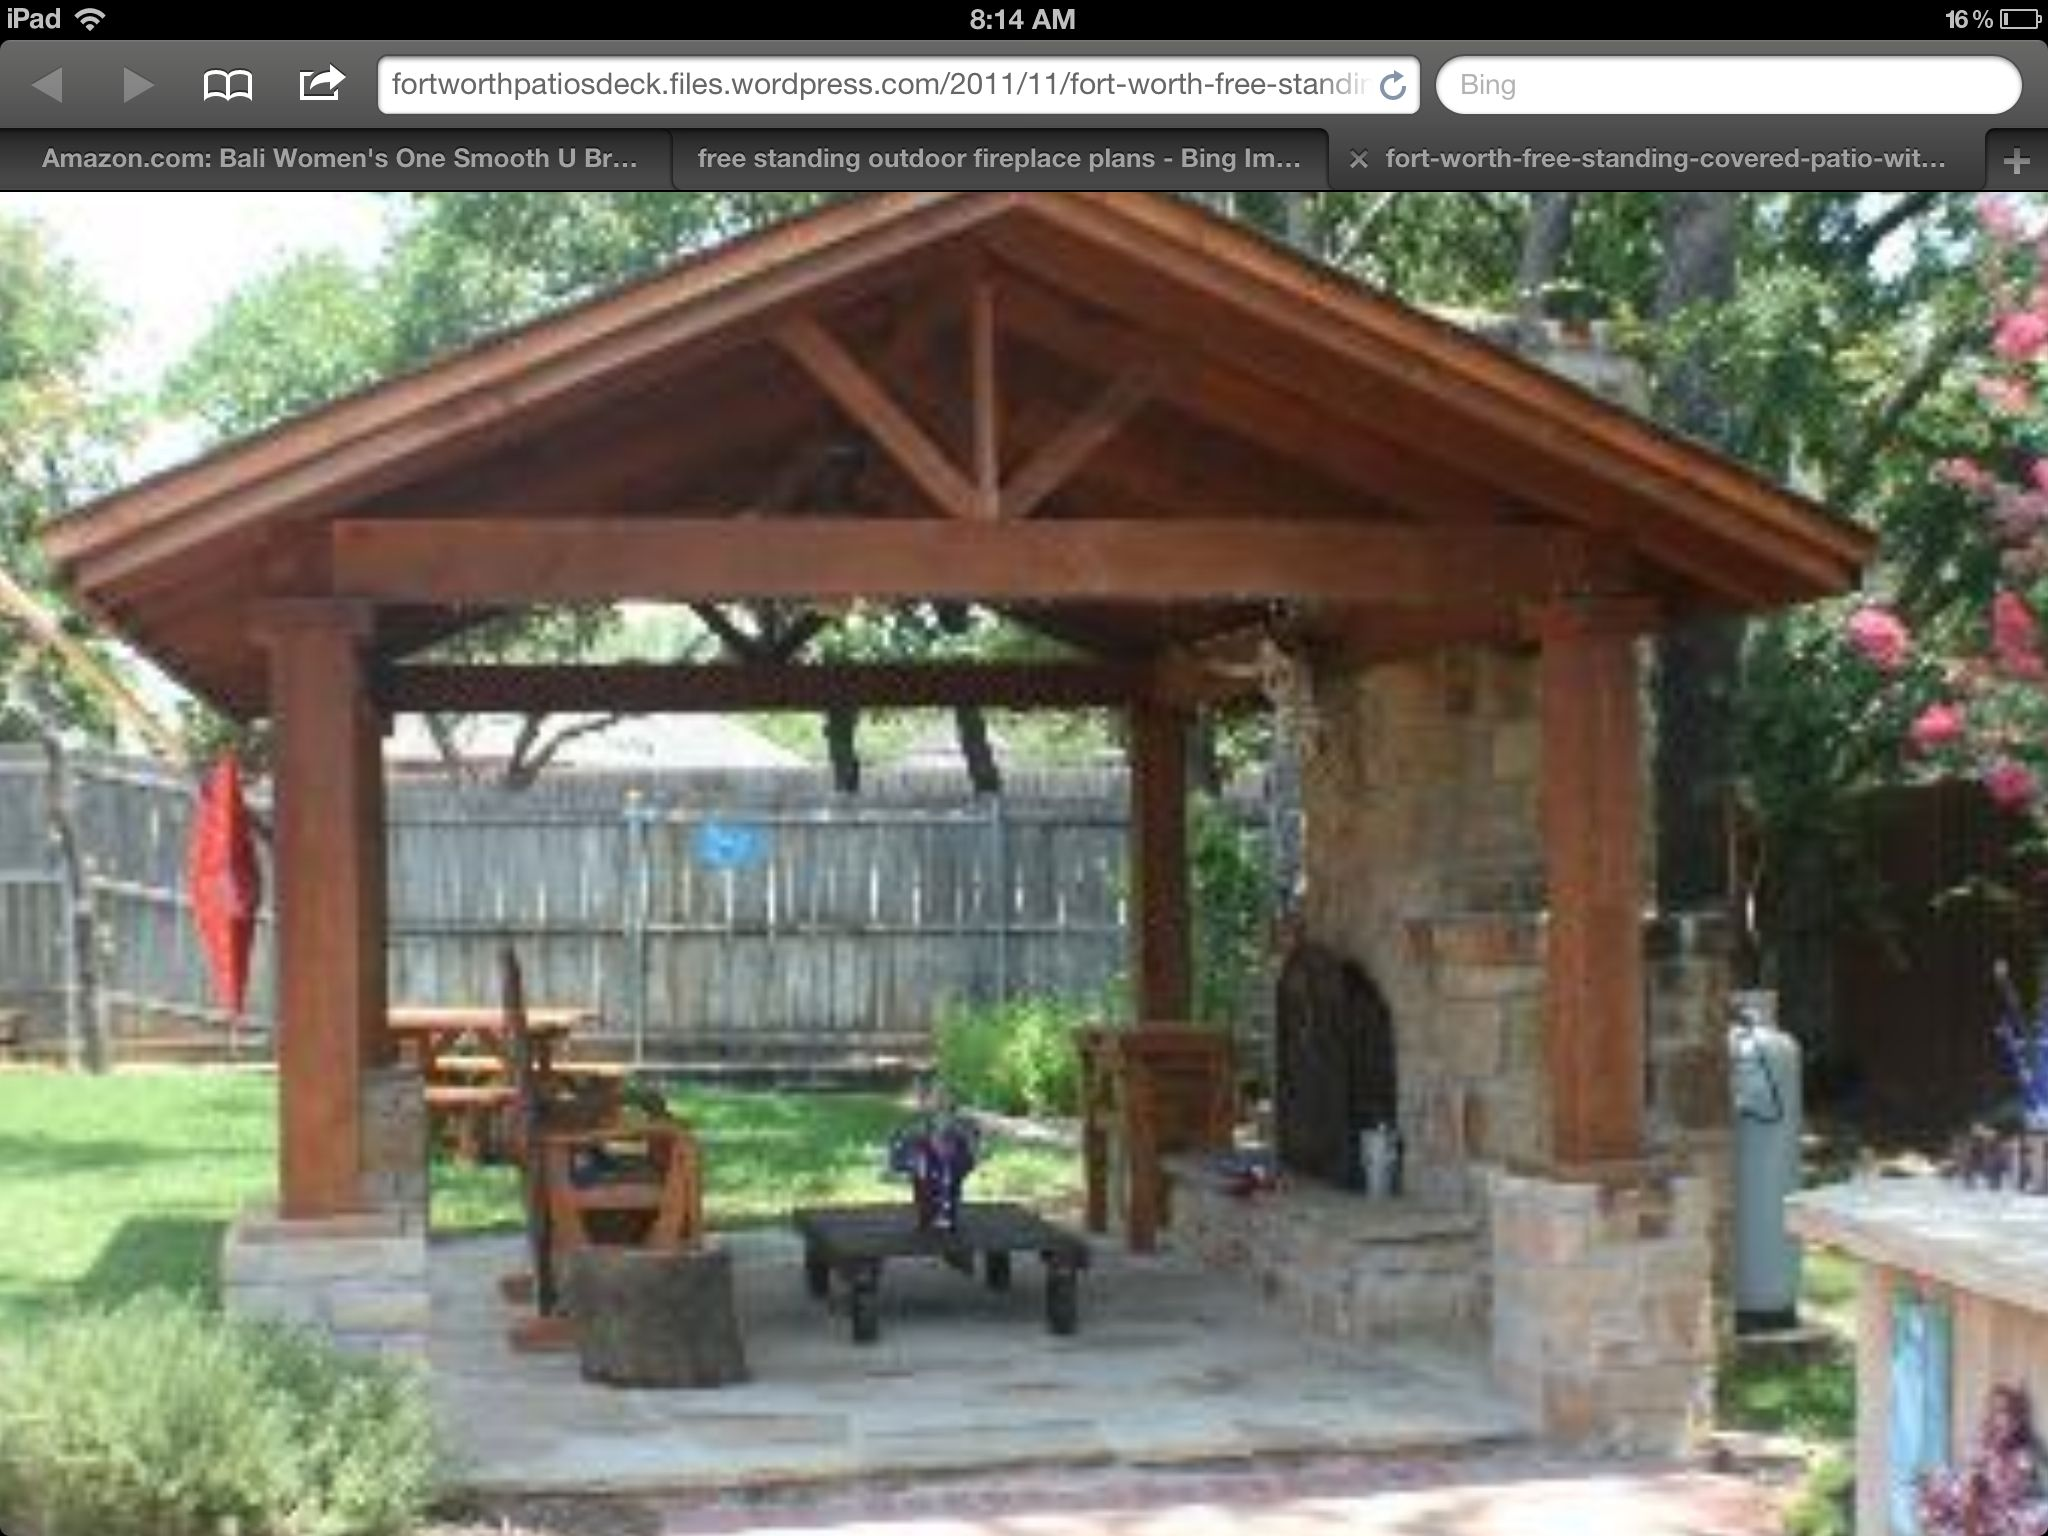 An Outdoor Room To Go With Deck Backyard Patio Outdoor Covered Patio Covered Patio Design